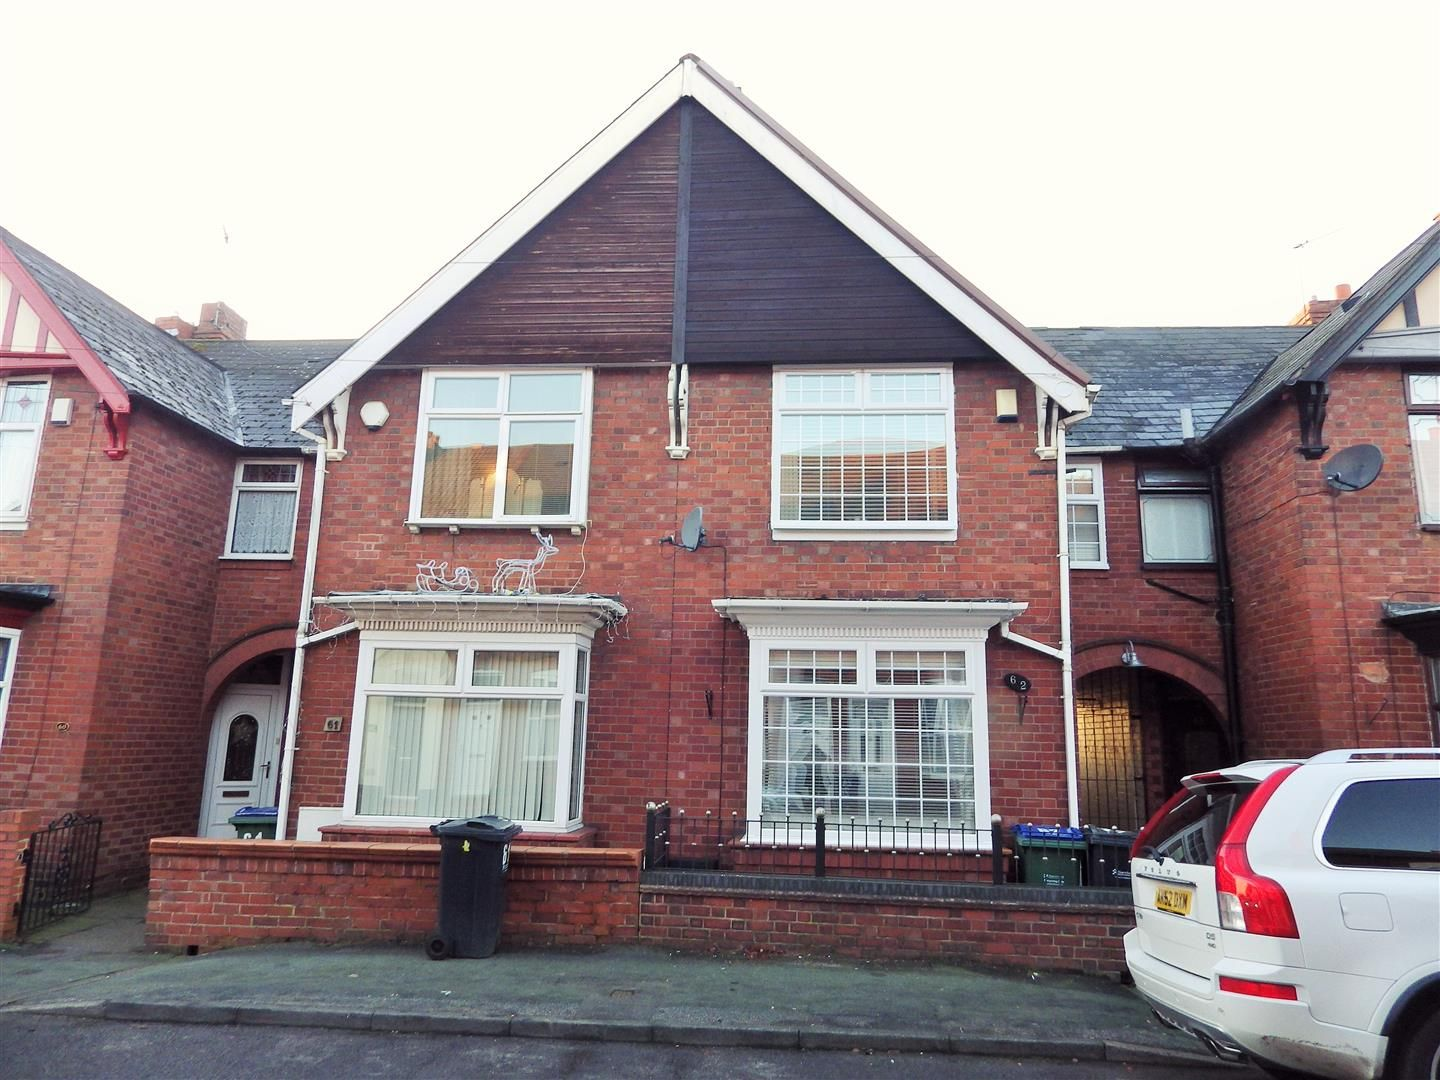 4 bed terraced for sale, B65